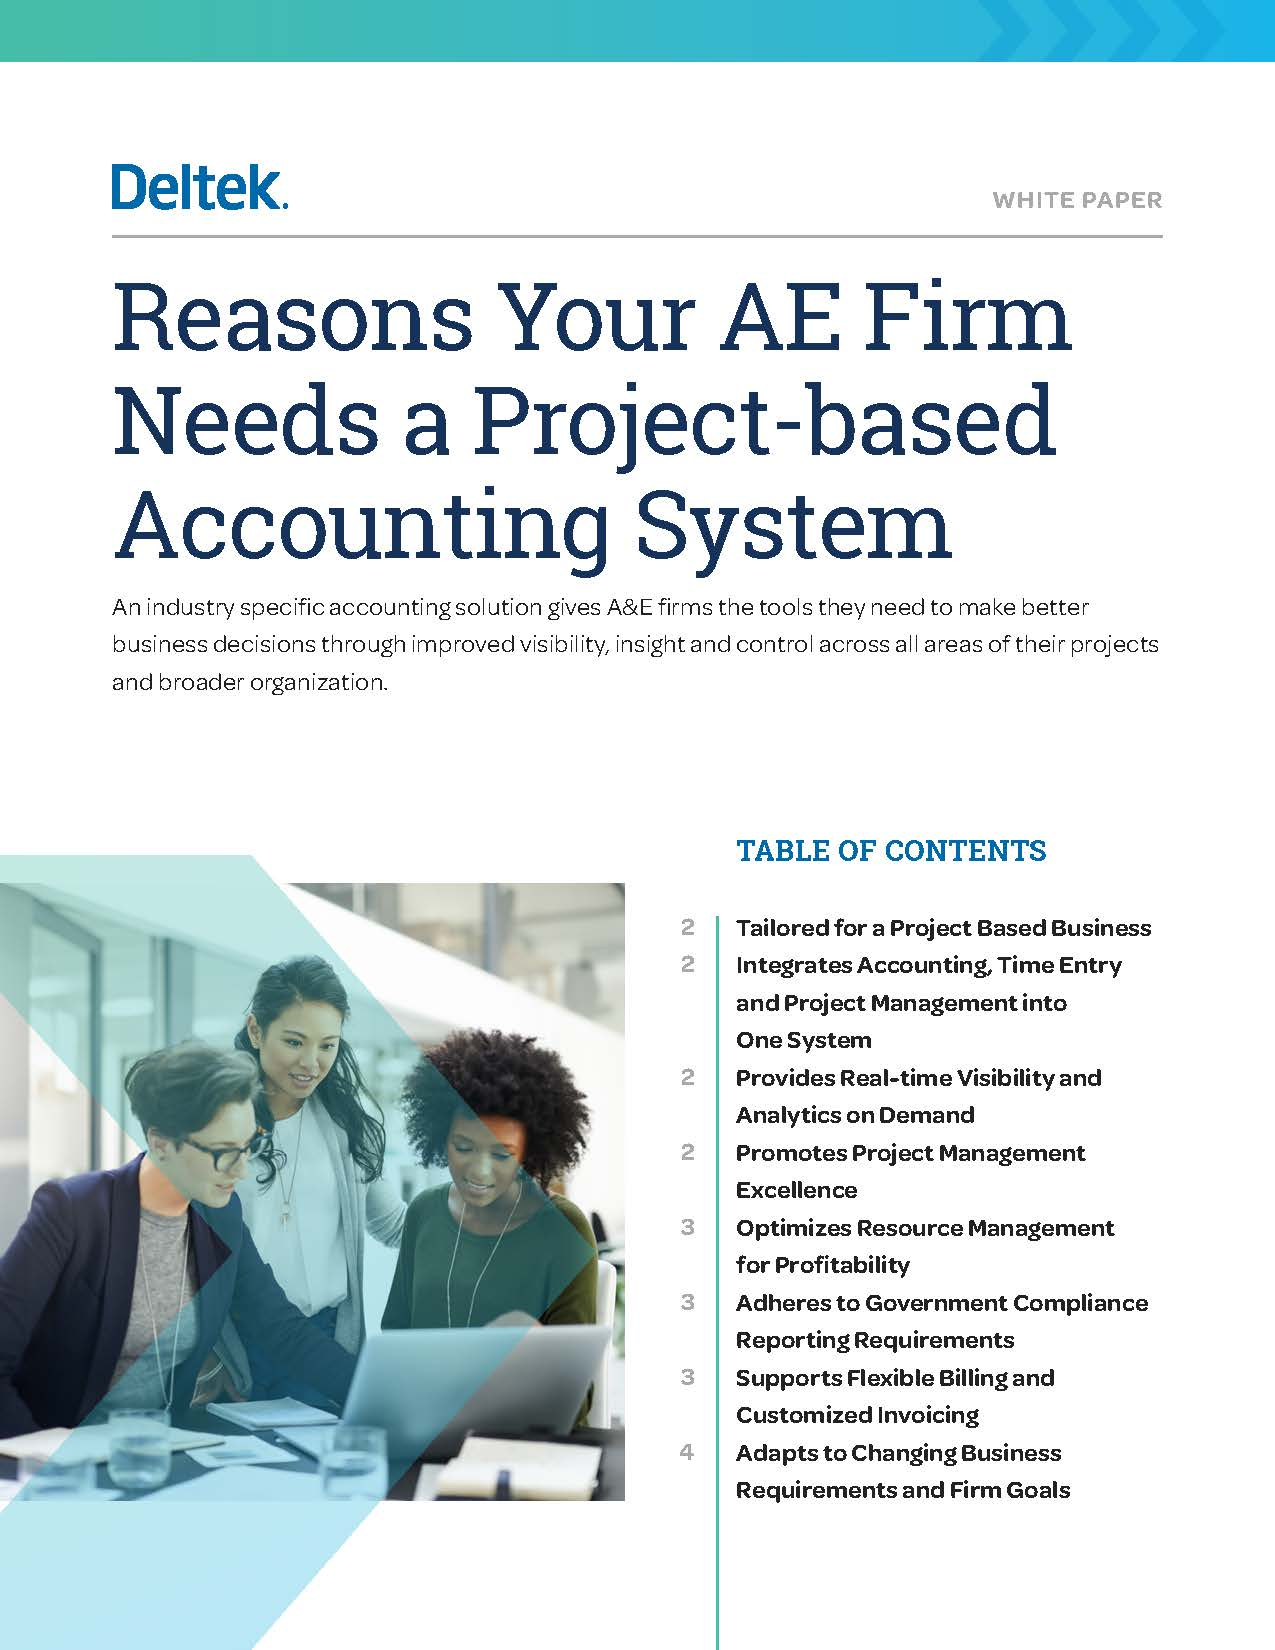 Reasons Your AE Firm Needs a Project-based Accounting System